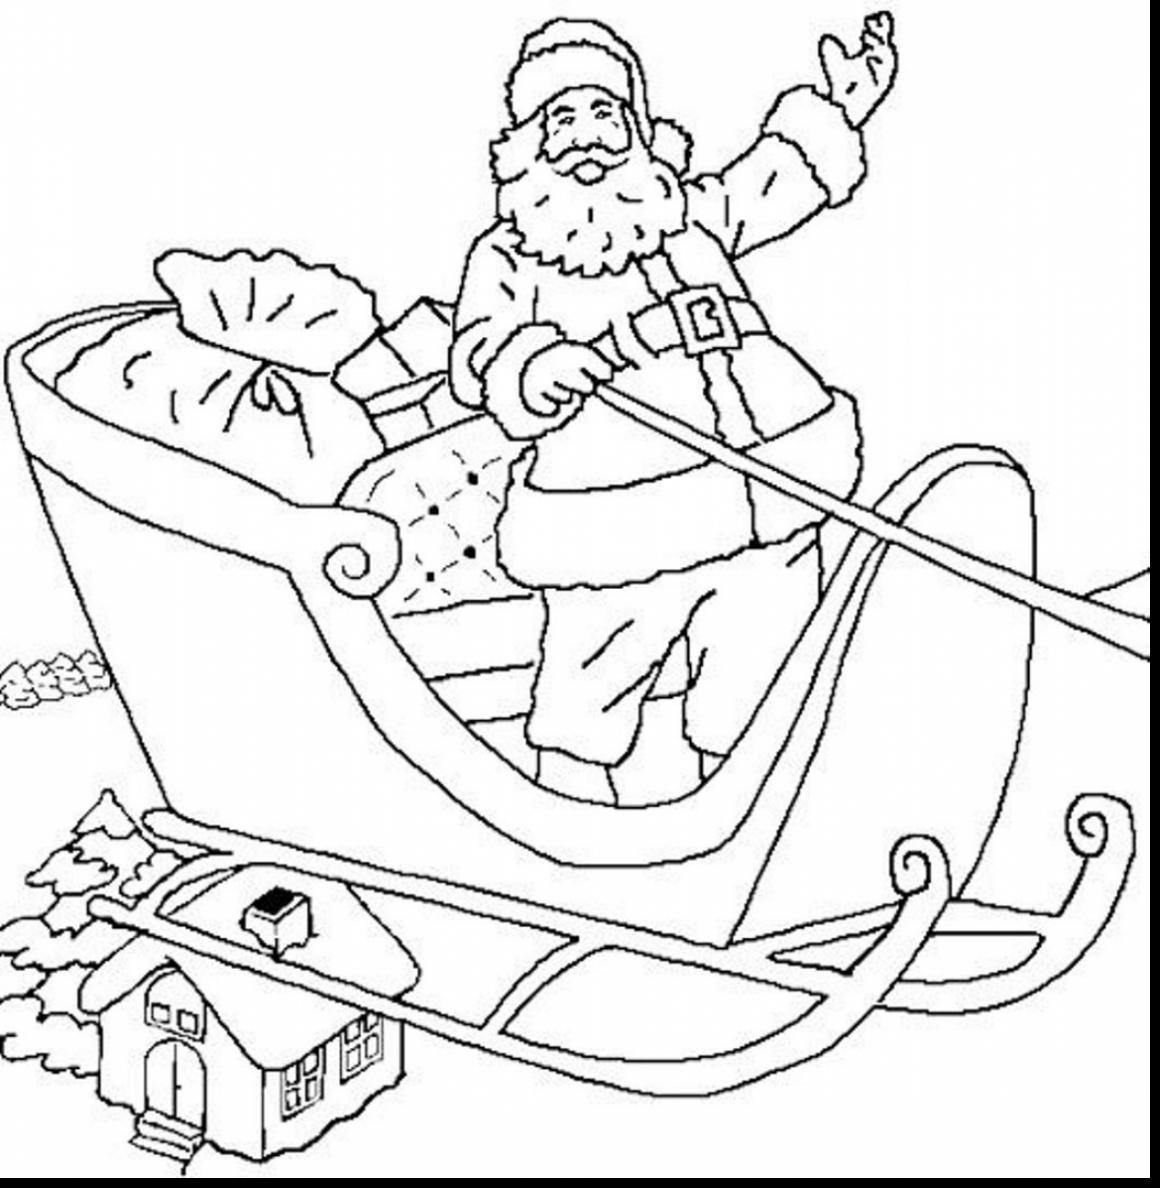 Santa Claus In Sleigh Coloring Page Santa Sled Coloring Page Chrismast And New Year